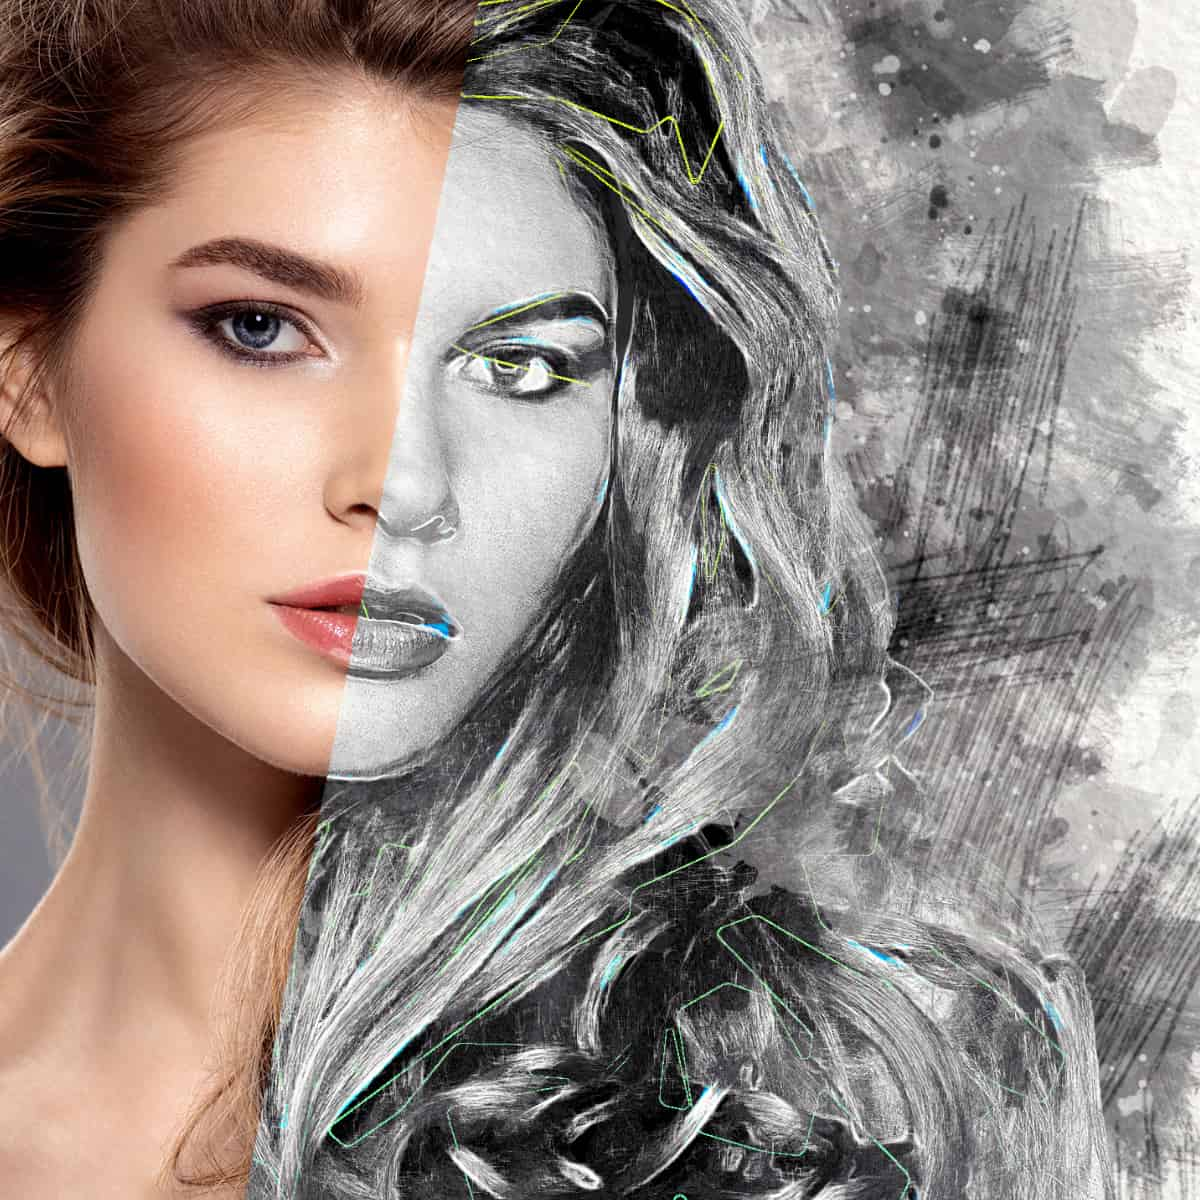 Artistic Mix Art Photo Effect